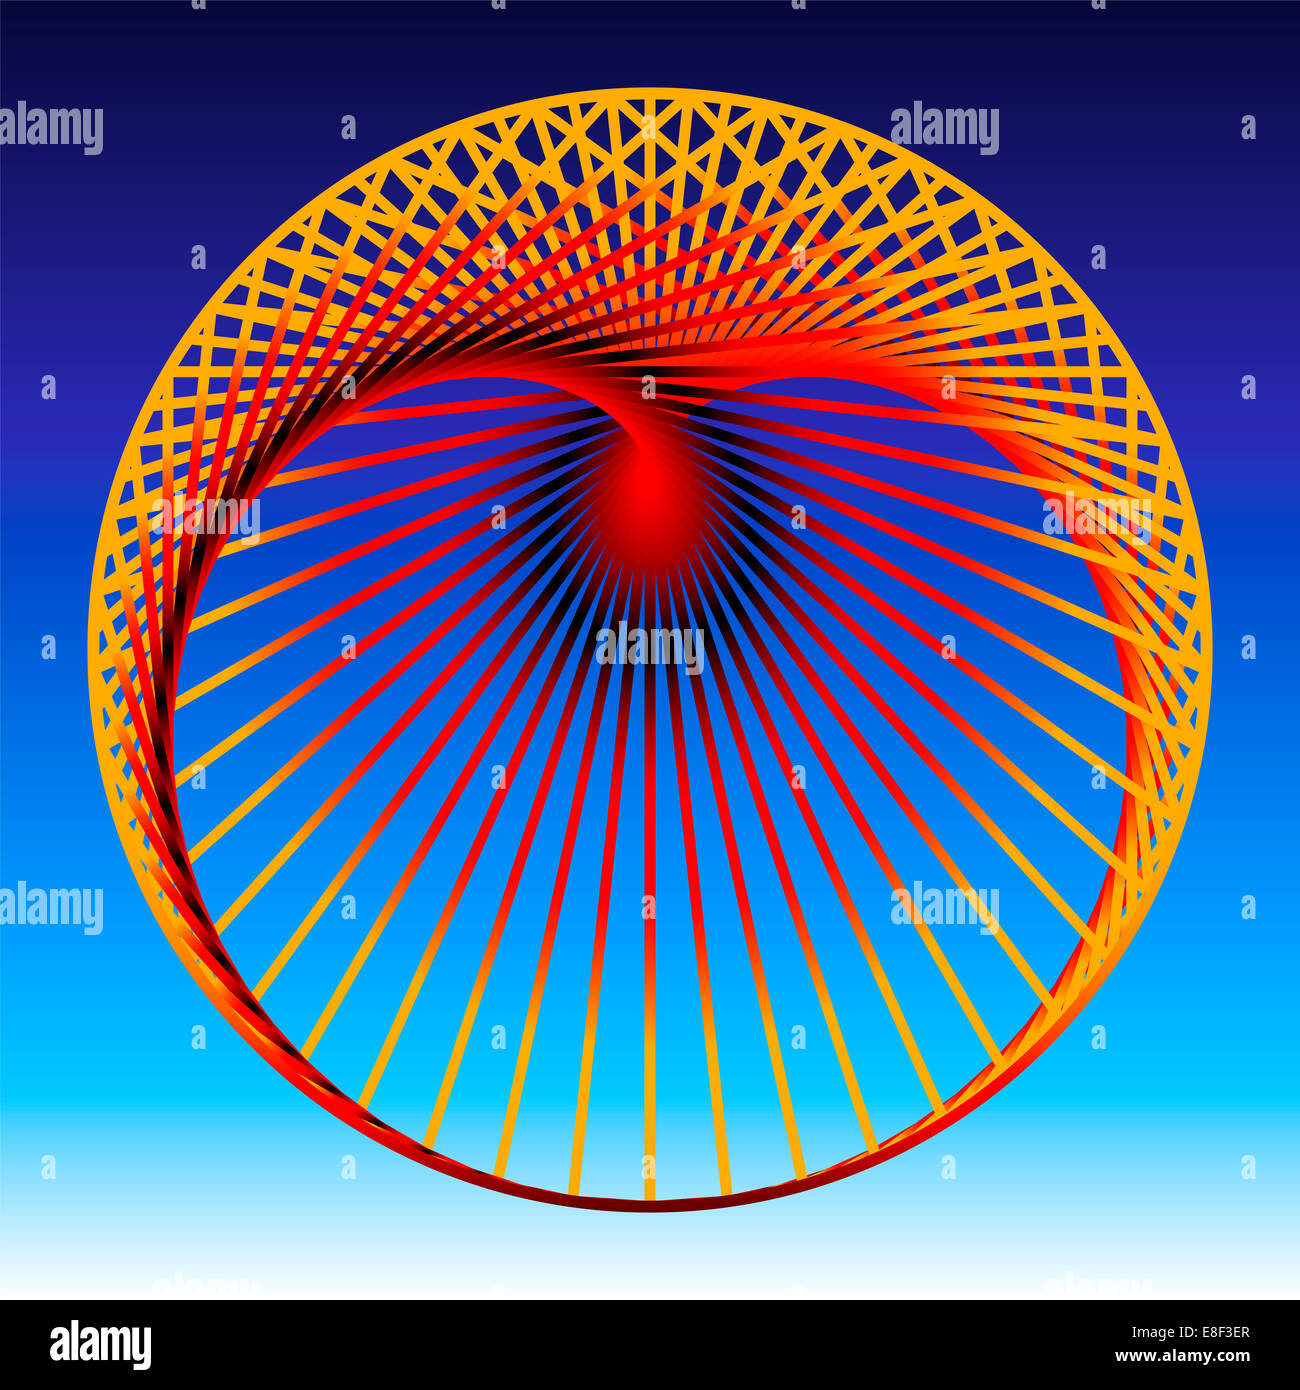 Cardioid, a mathematical plane curve, composed of orange to red gradient lines, which generate a heart shaped geometric - Stock Image